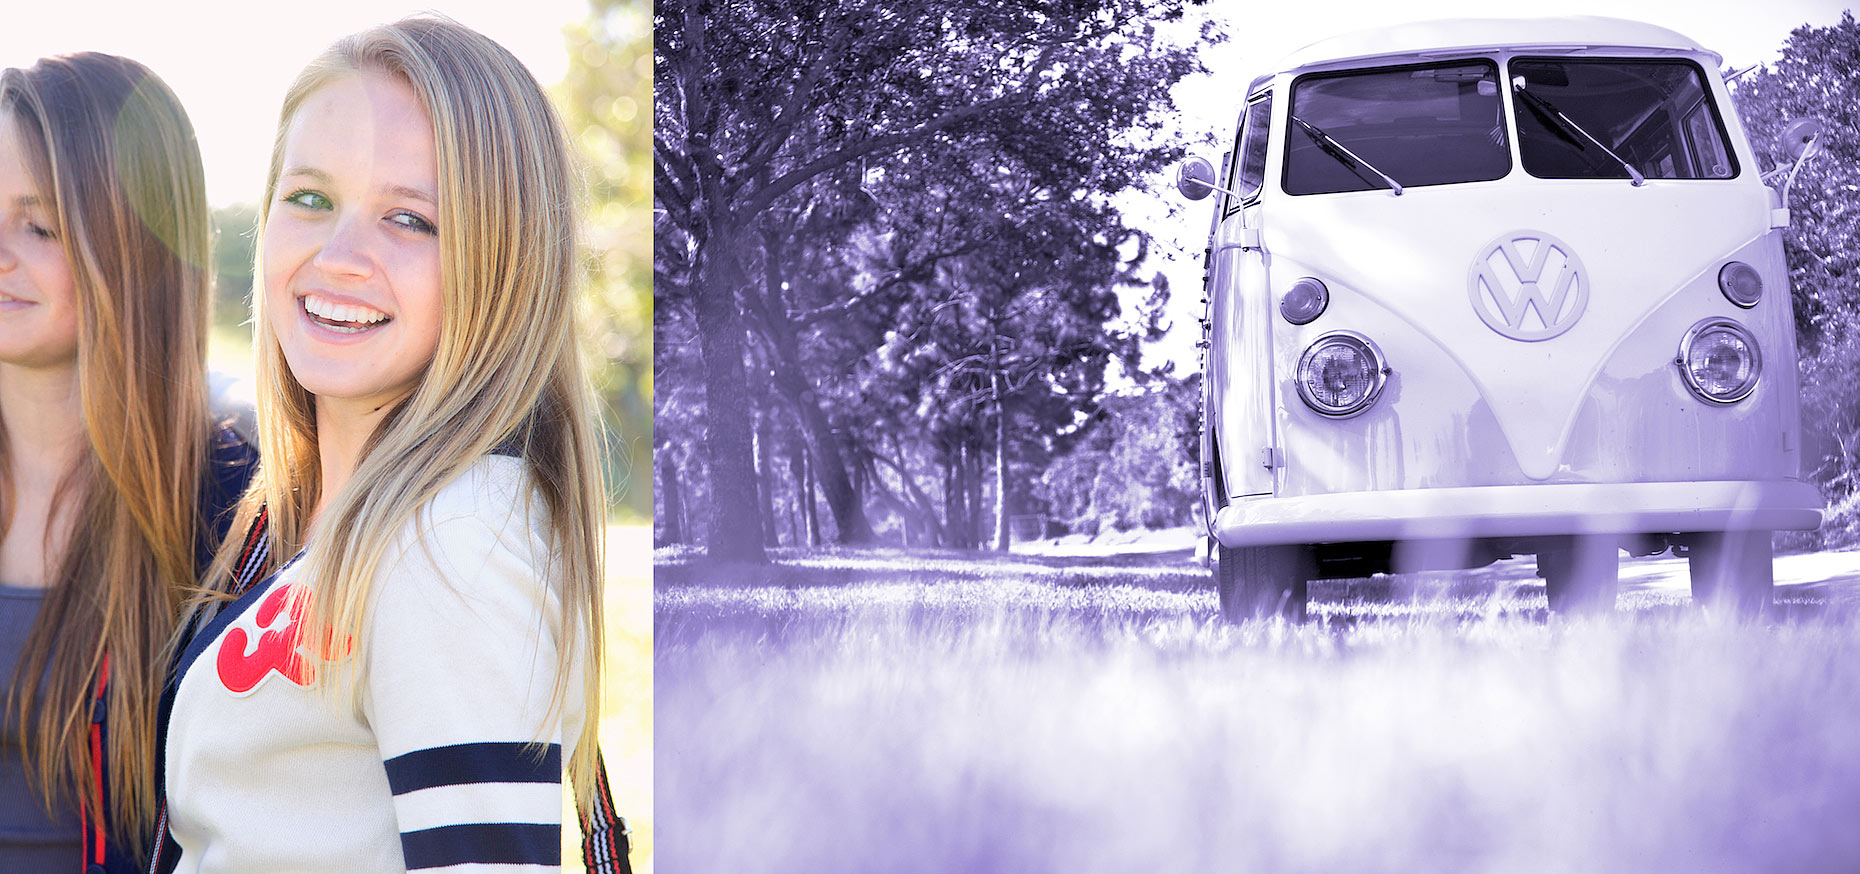 teenage girls and old VW van_Robert-Holland.jpg